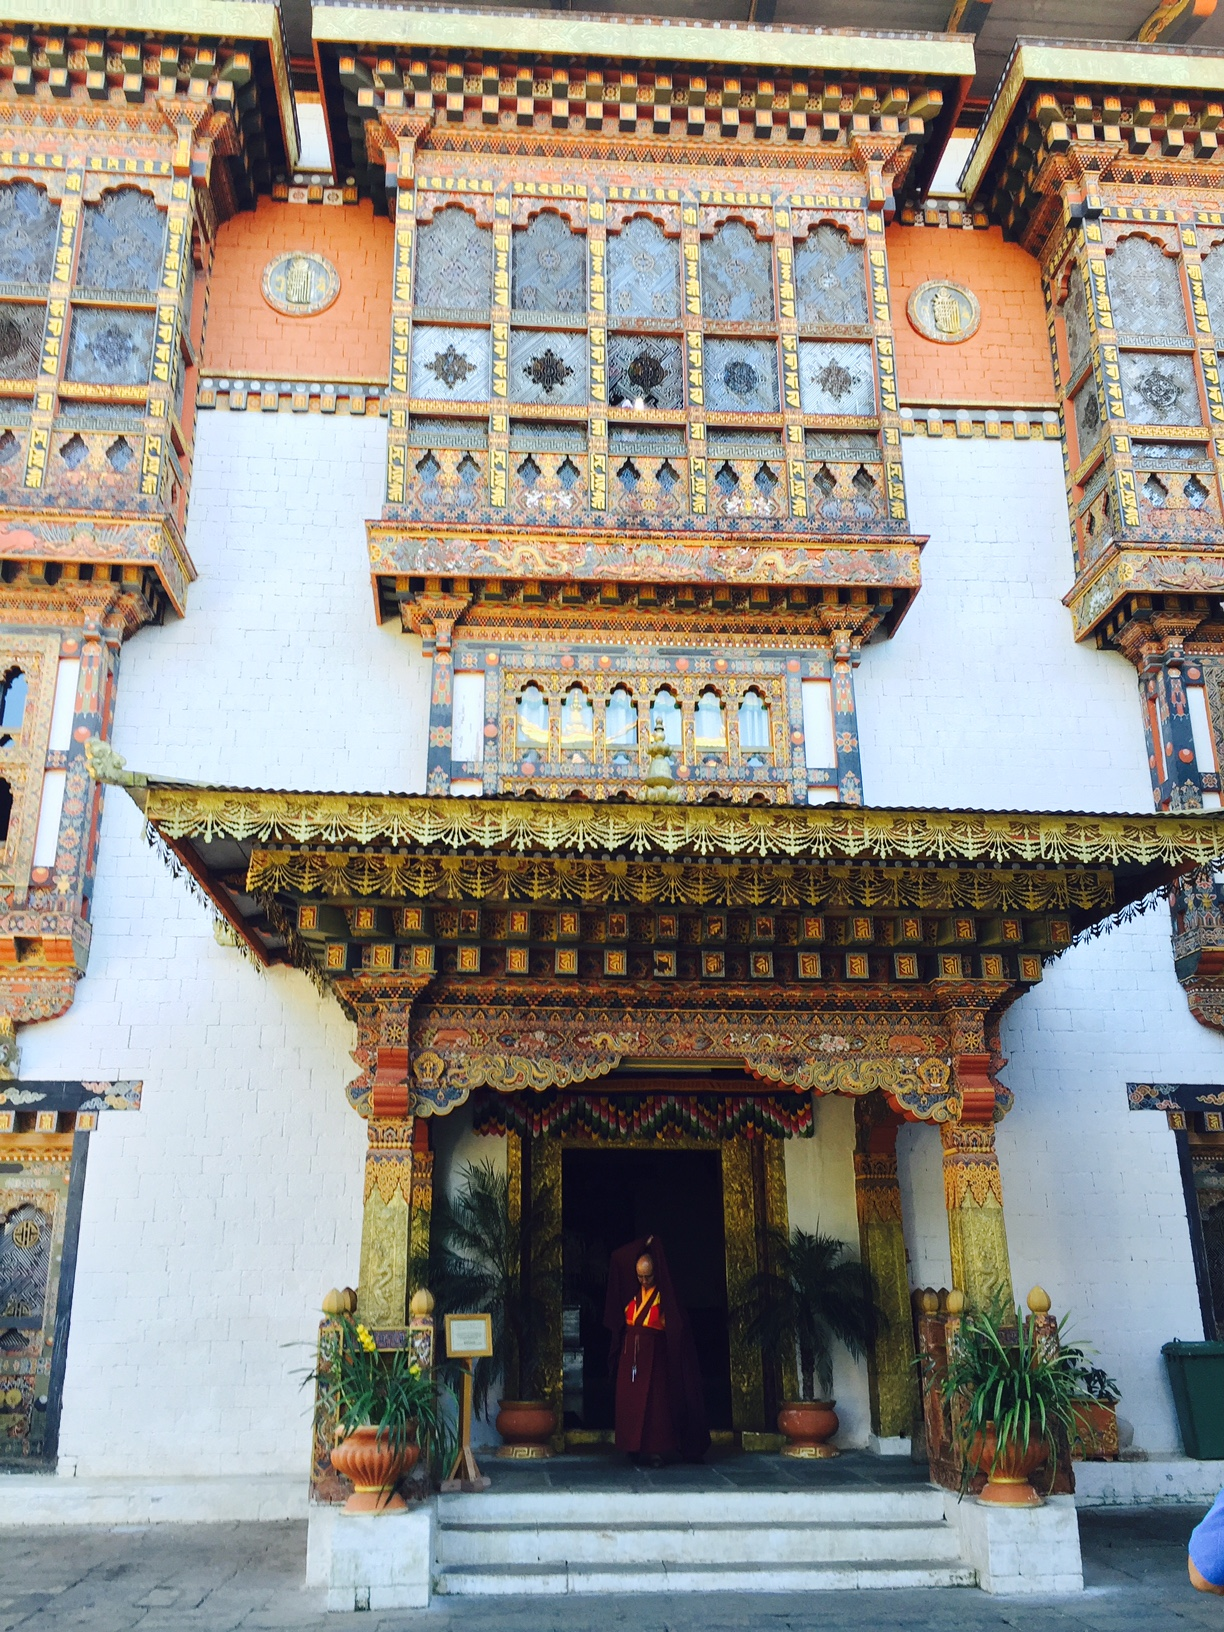 Everywhere in Bhutan, buildings of all types are handpainted with beautiful Buddhist designs. This is a monastery in the Dhzong in Thimphu.